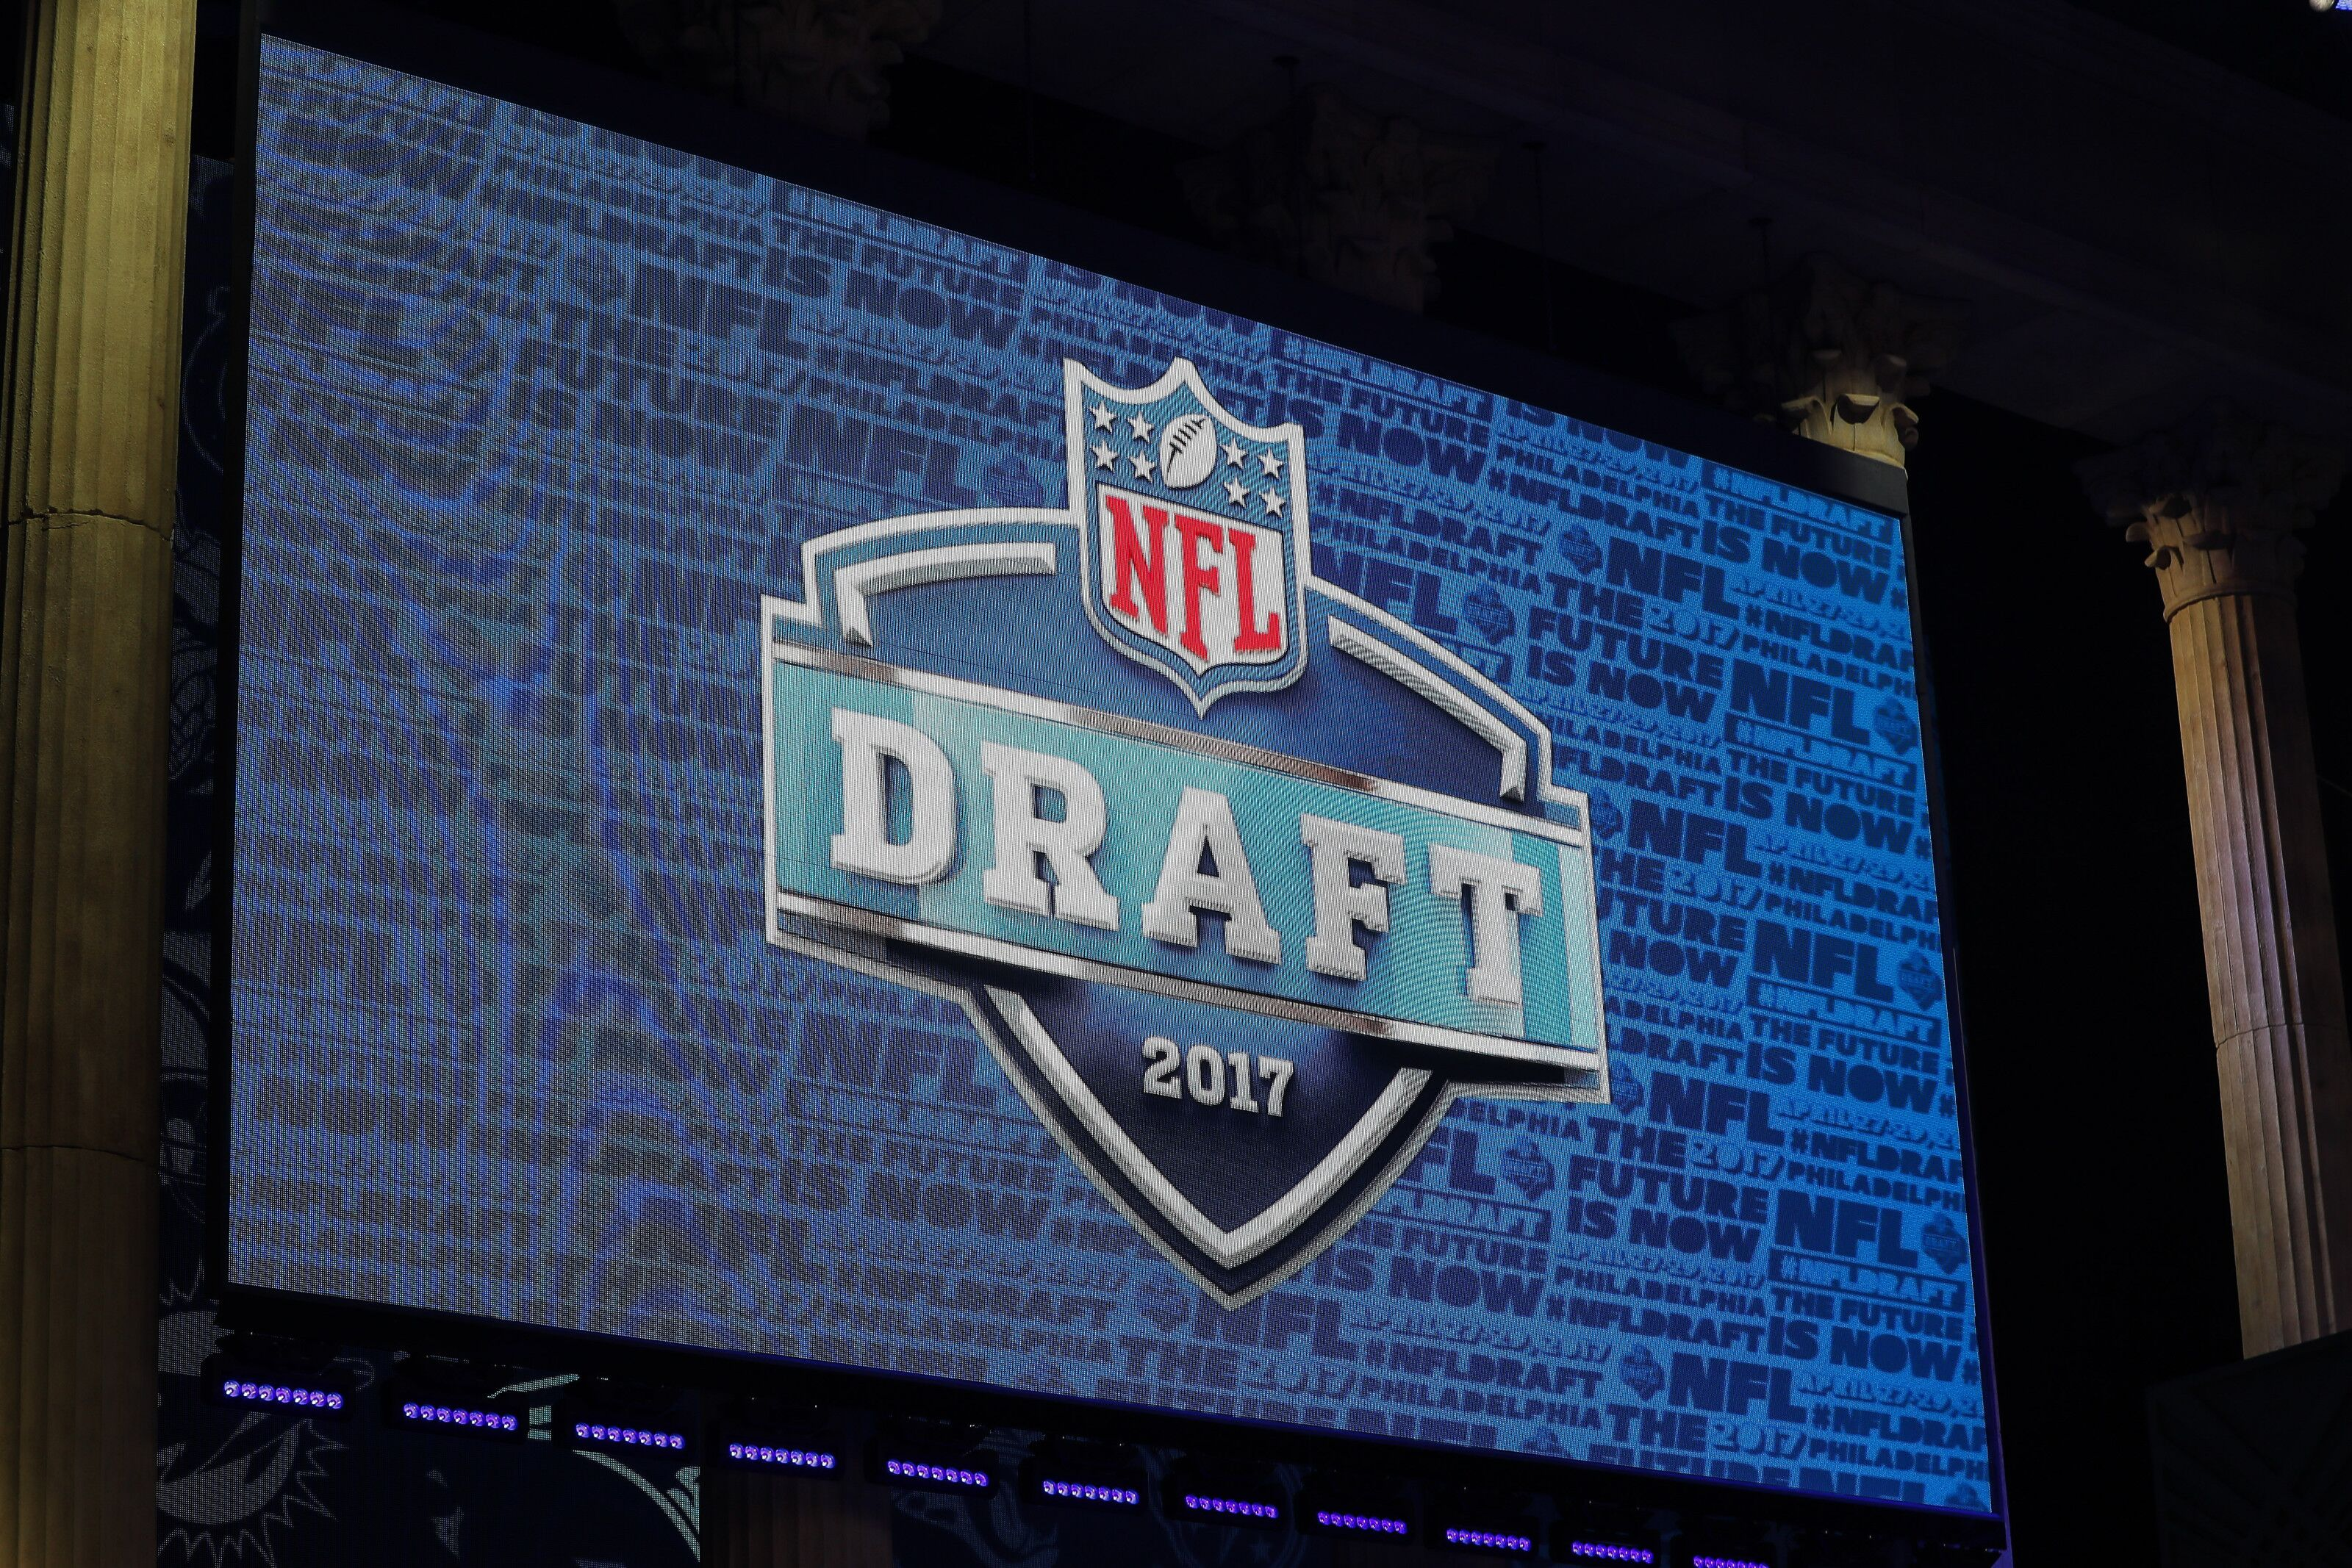 674615084-nfl-apr-27-2017-nfl-draft.jpg